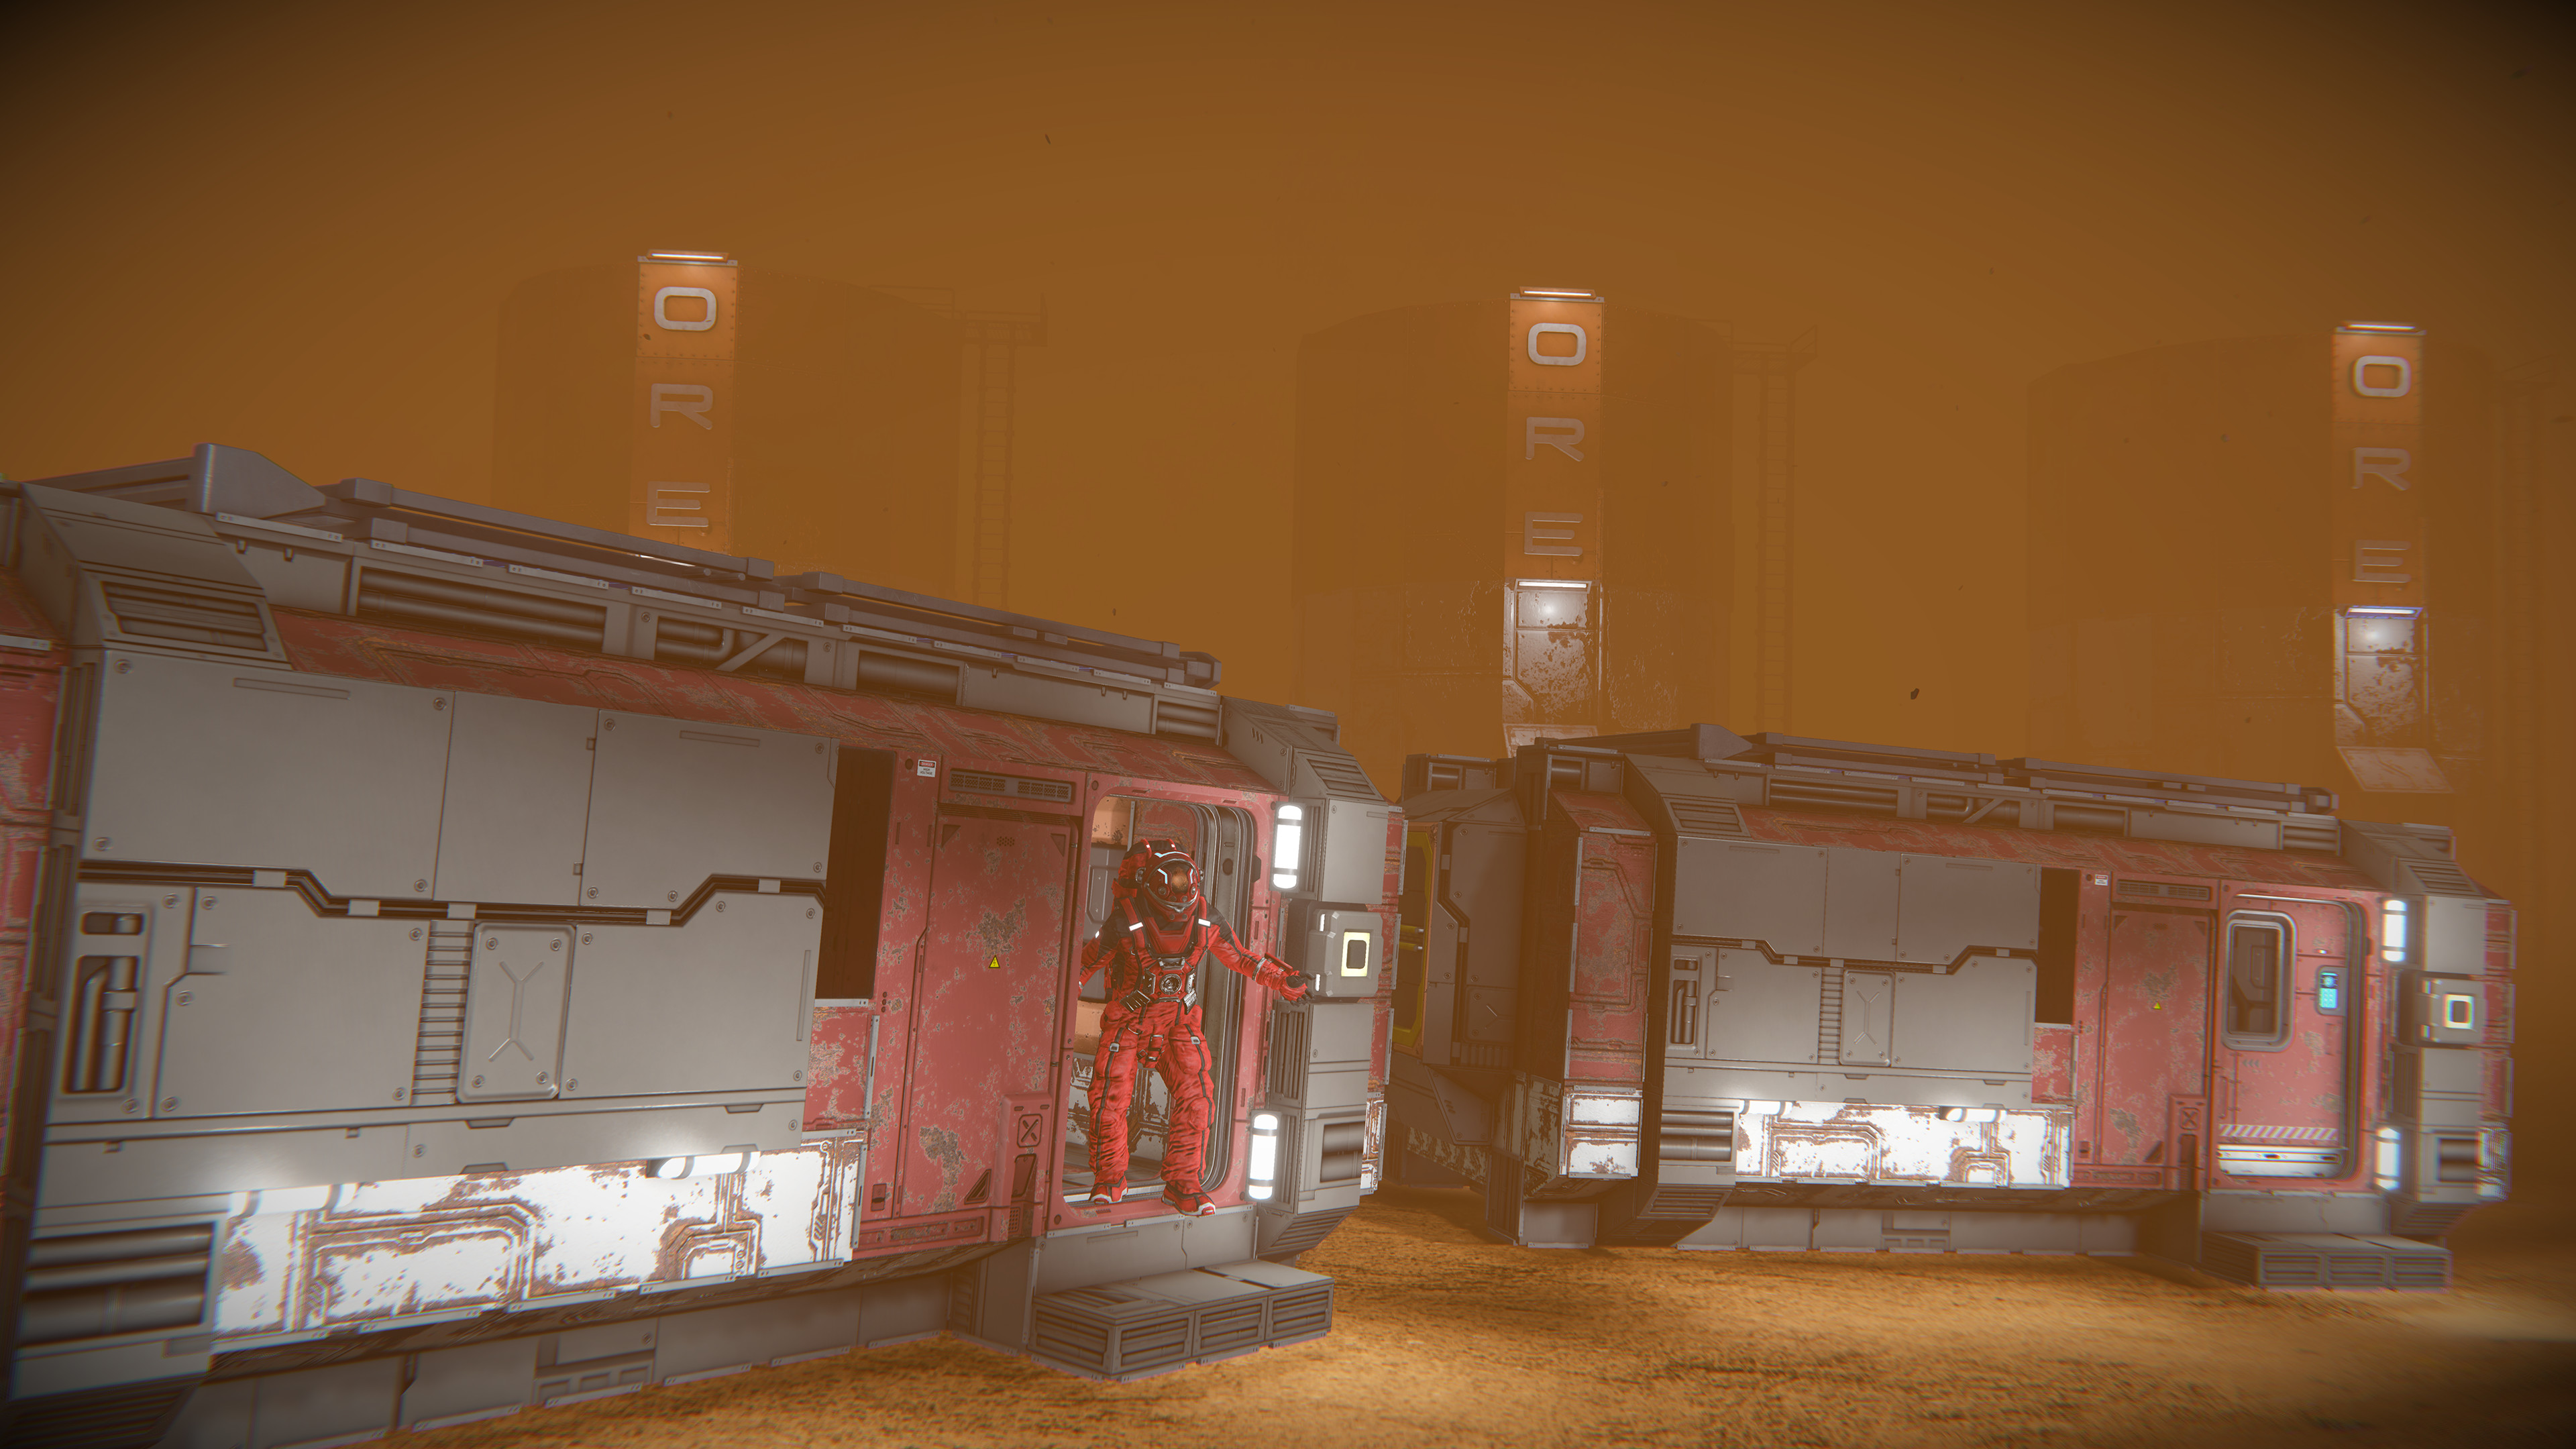 Space Engineers - Sparks of the Future screenshot